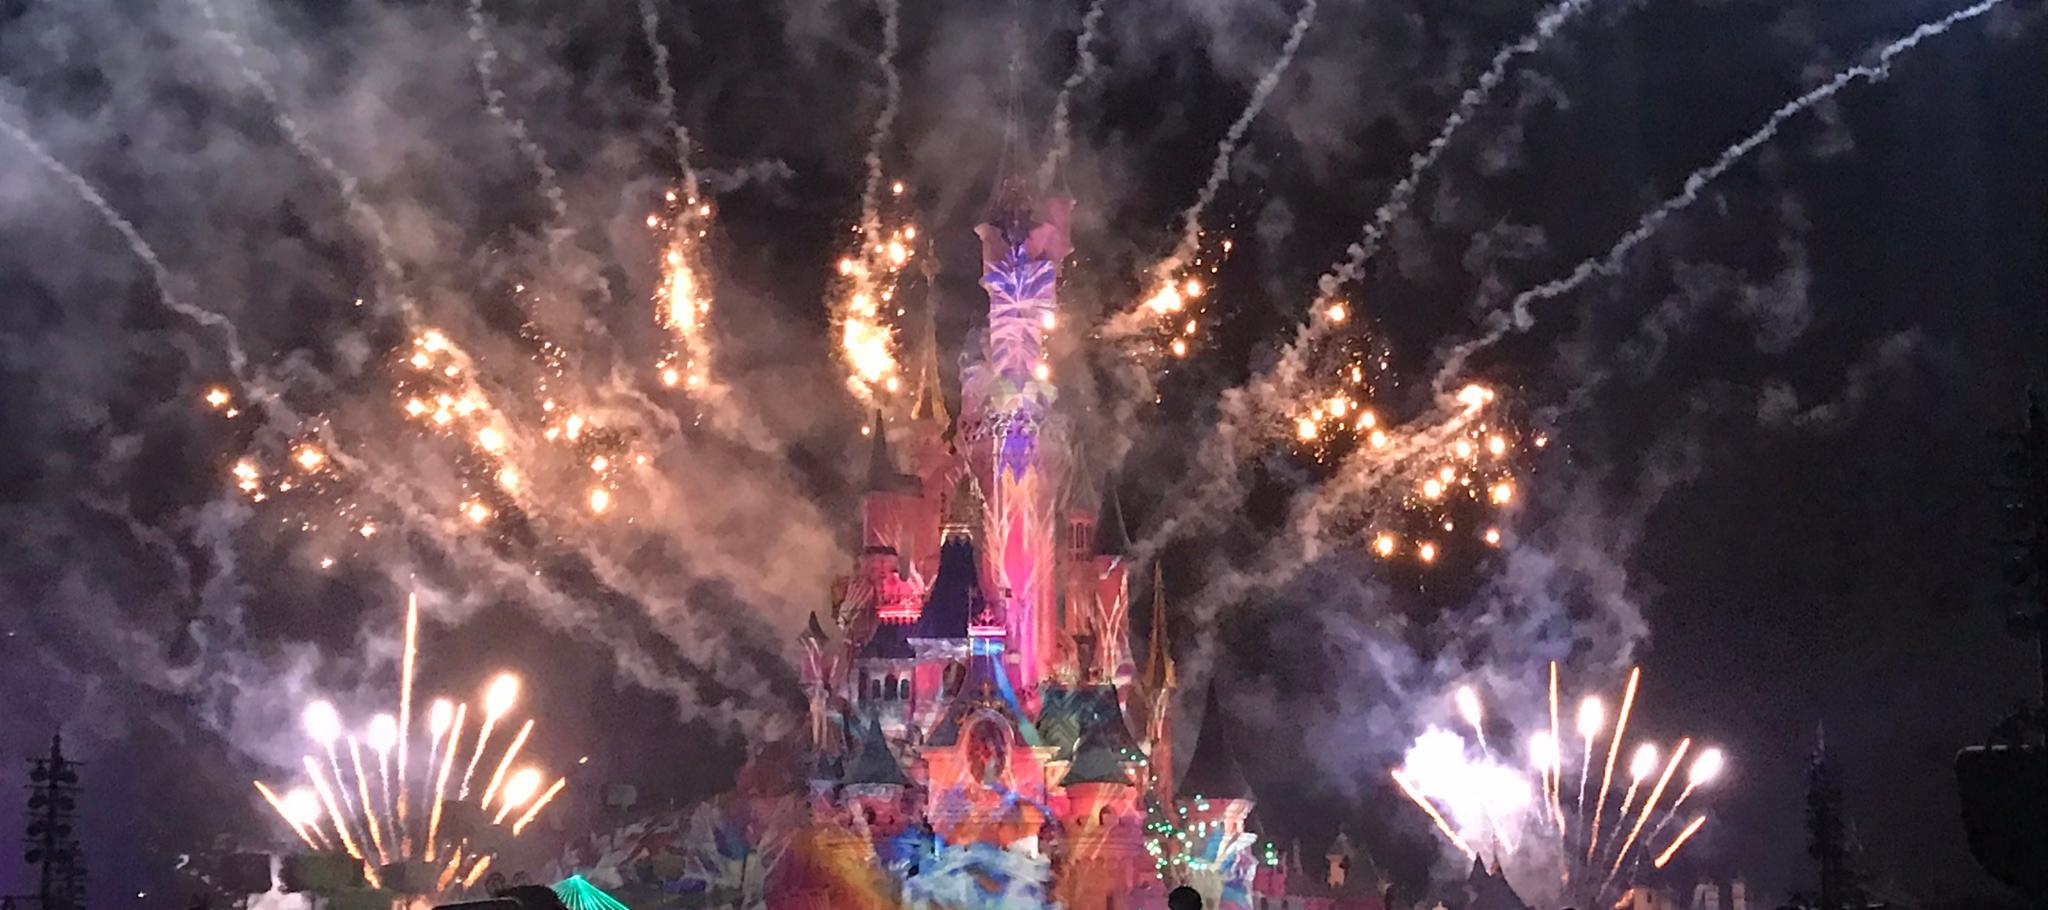 The Spectacularly Sparkly Disney Illuminations Show at Disneyland Paris